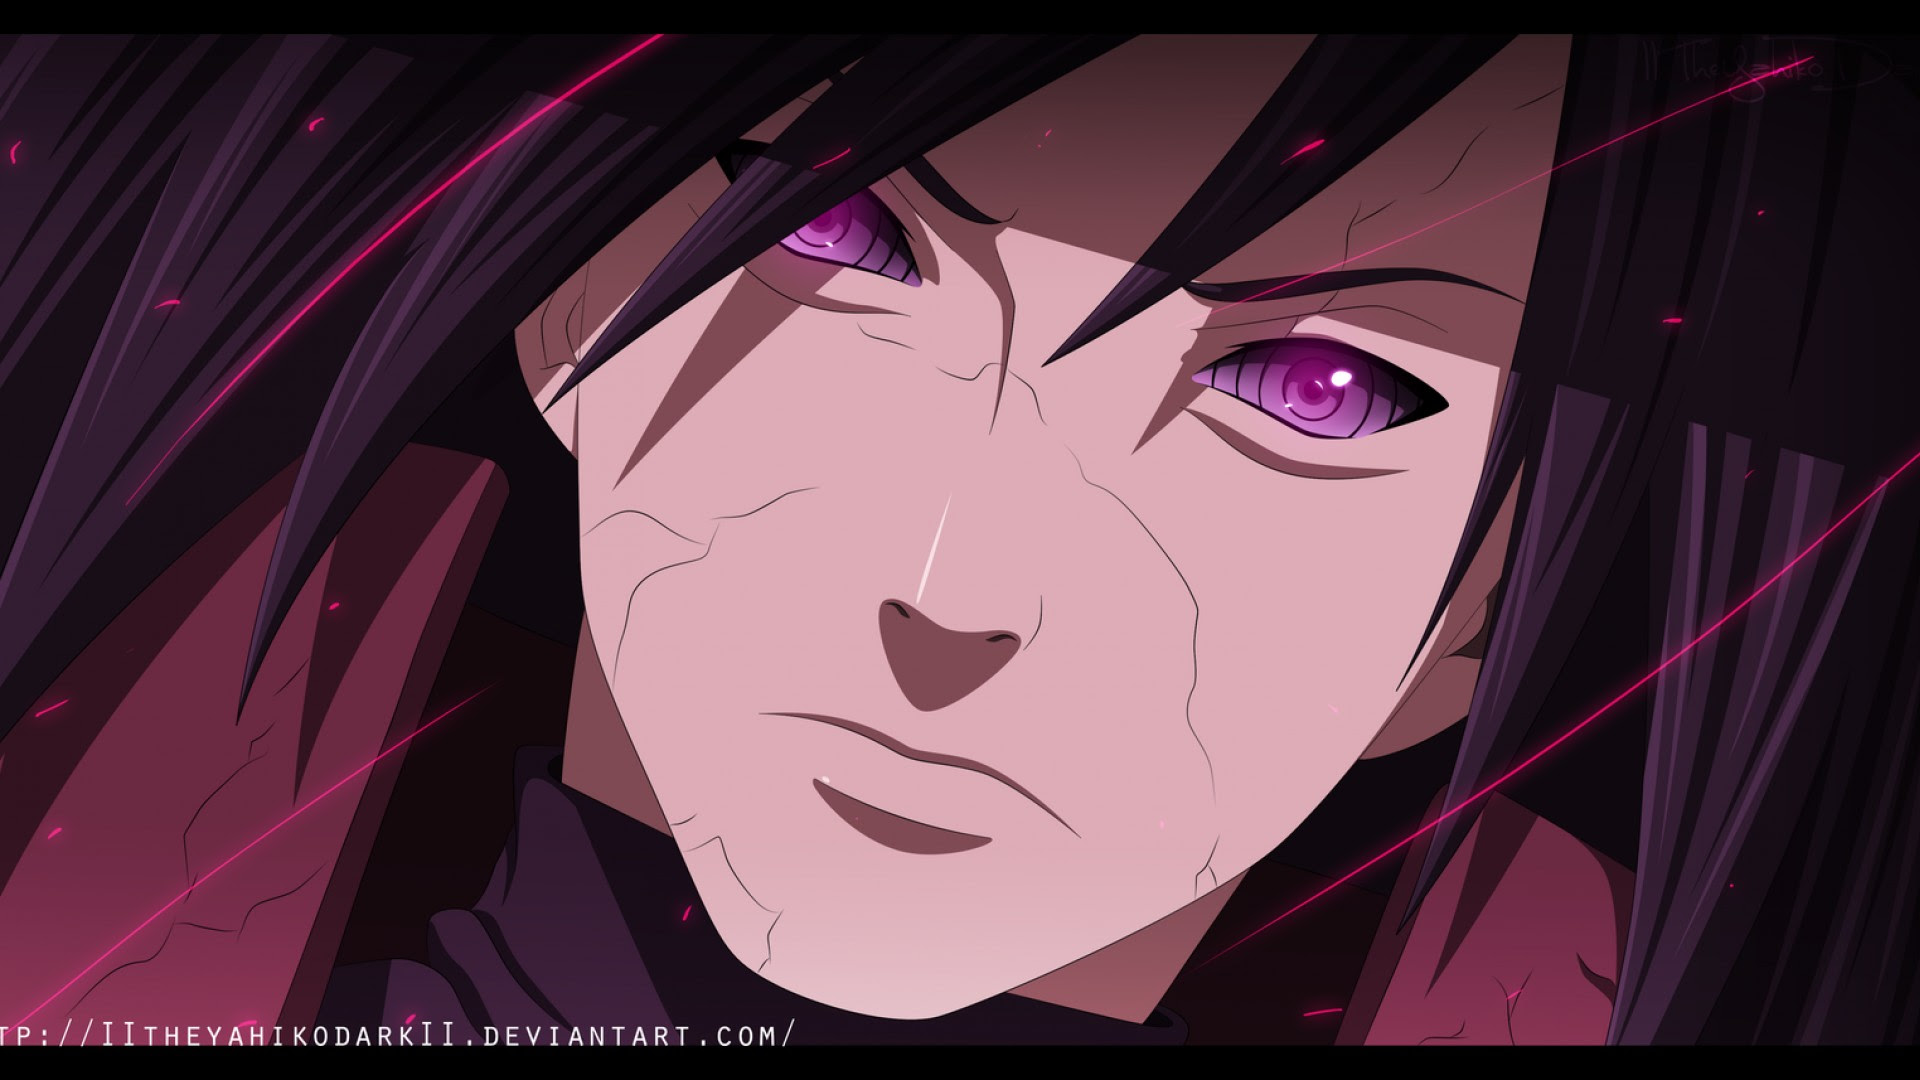 Uchiha Madara Wallpapers Hd Desktop Backgrounds Images And Pictures 1920x1080